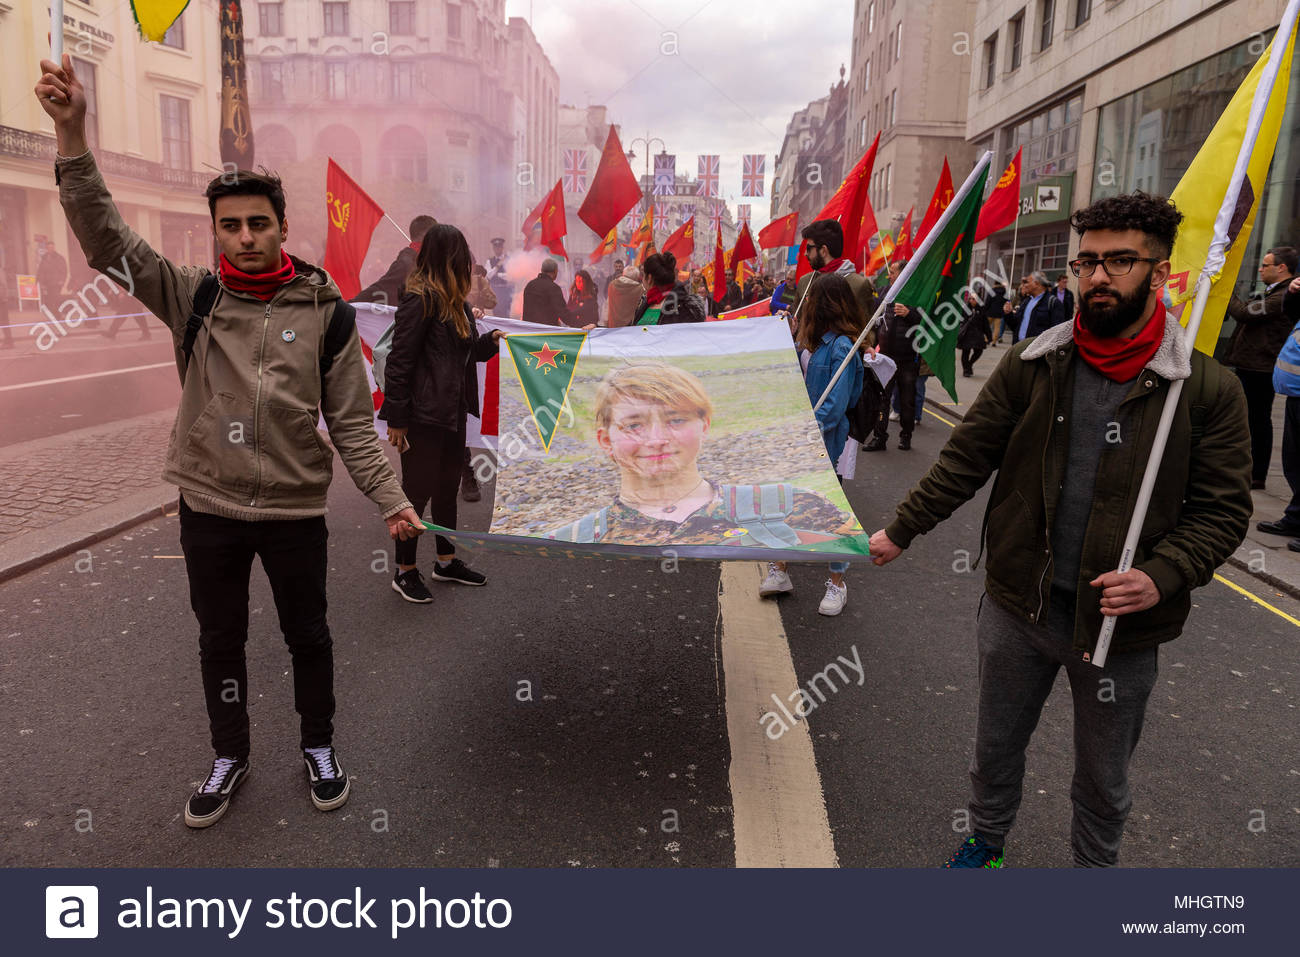 London, UK. 1st may 2018. Communists, socialists and trade unionists gather at Clerkenwell Green before their annual  International Workers Day march to Trafalgar Square ©2018 London, Great Britain. Dave Nash/Alamy Live News - Stock Image